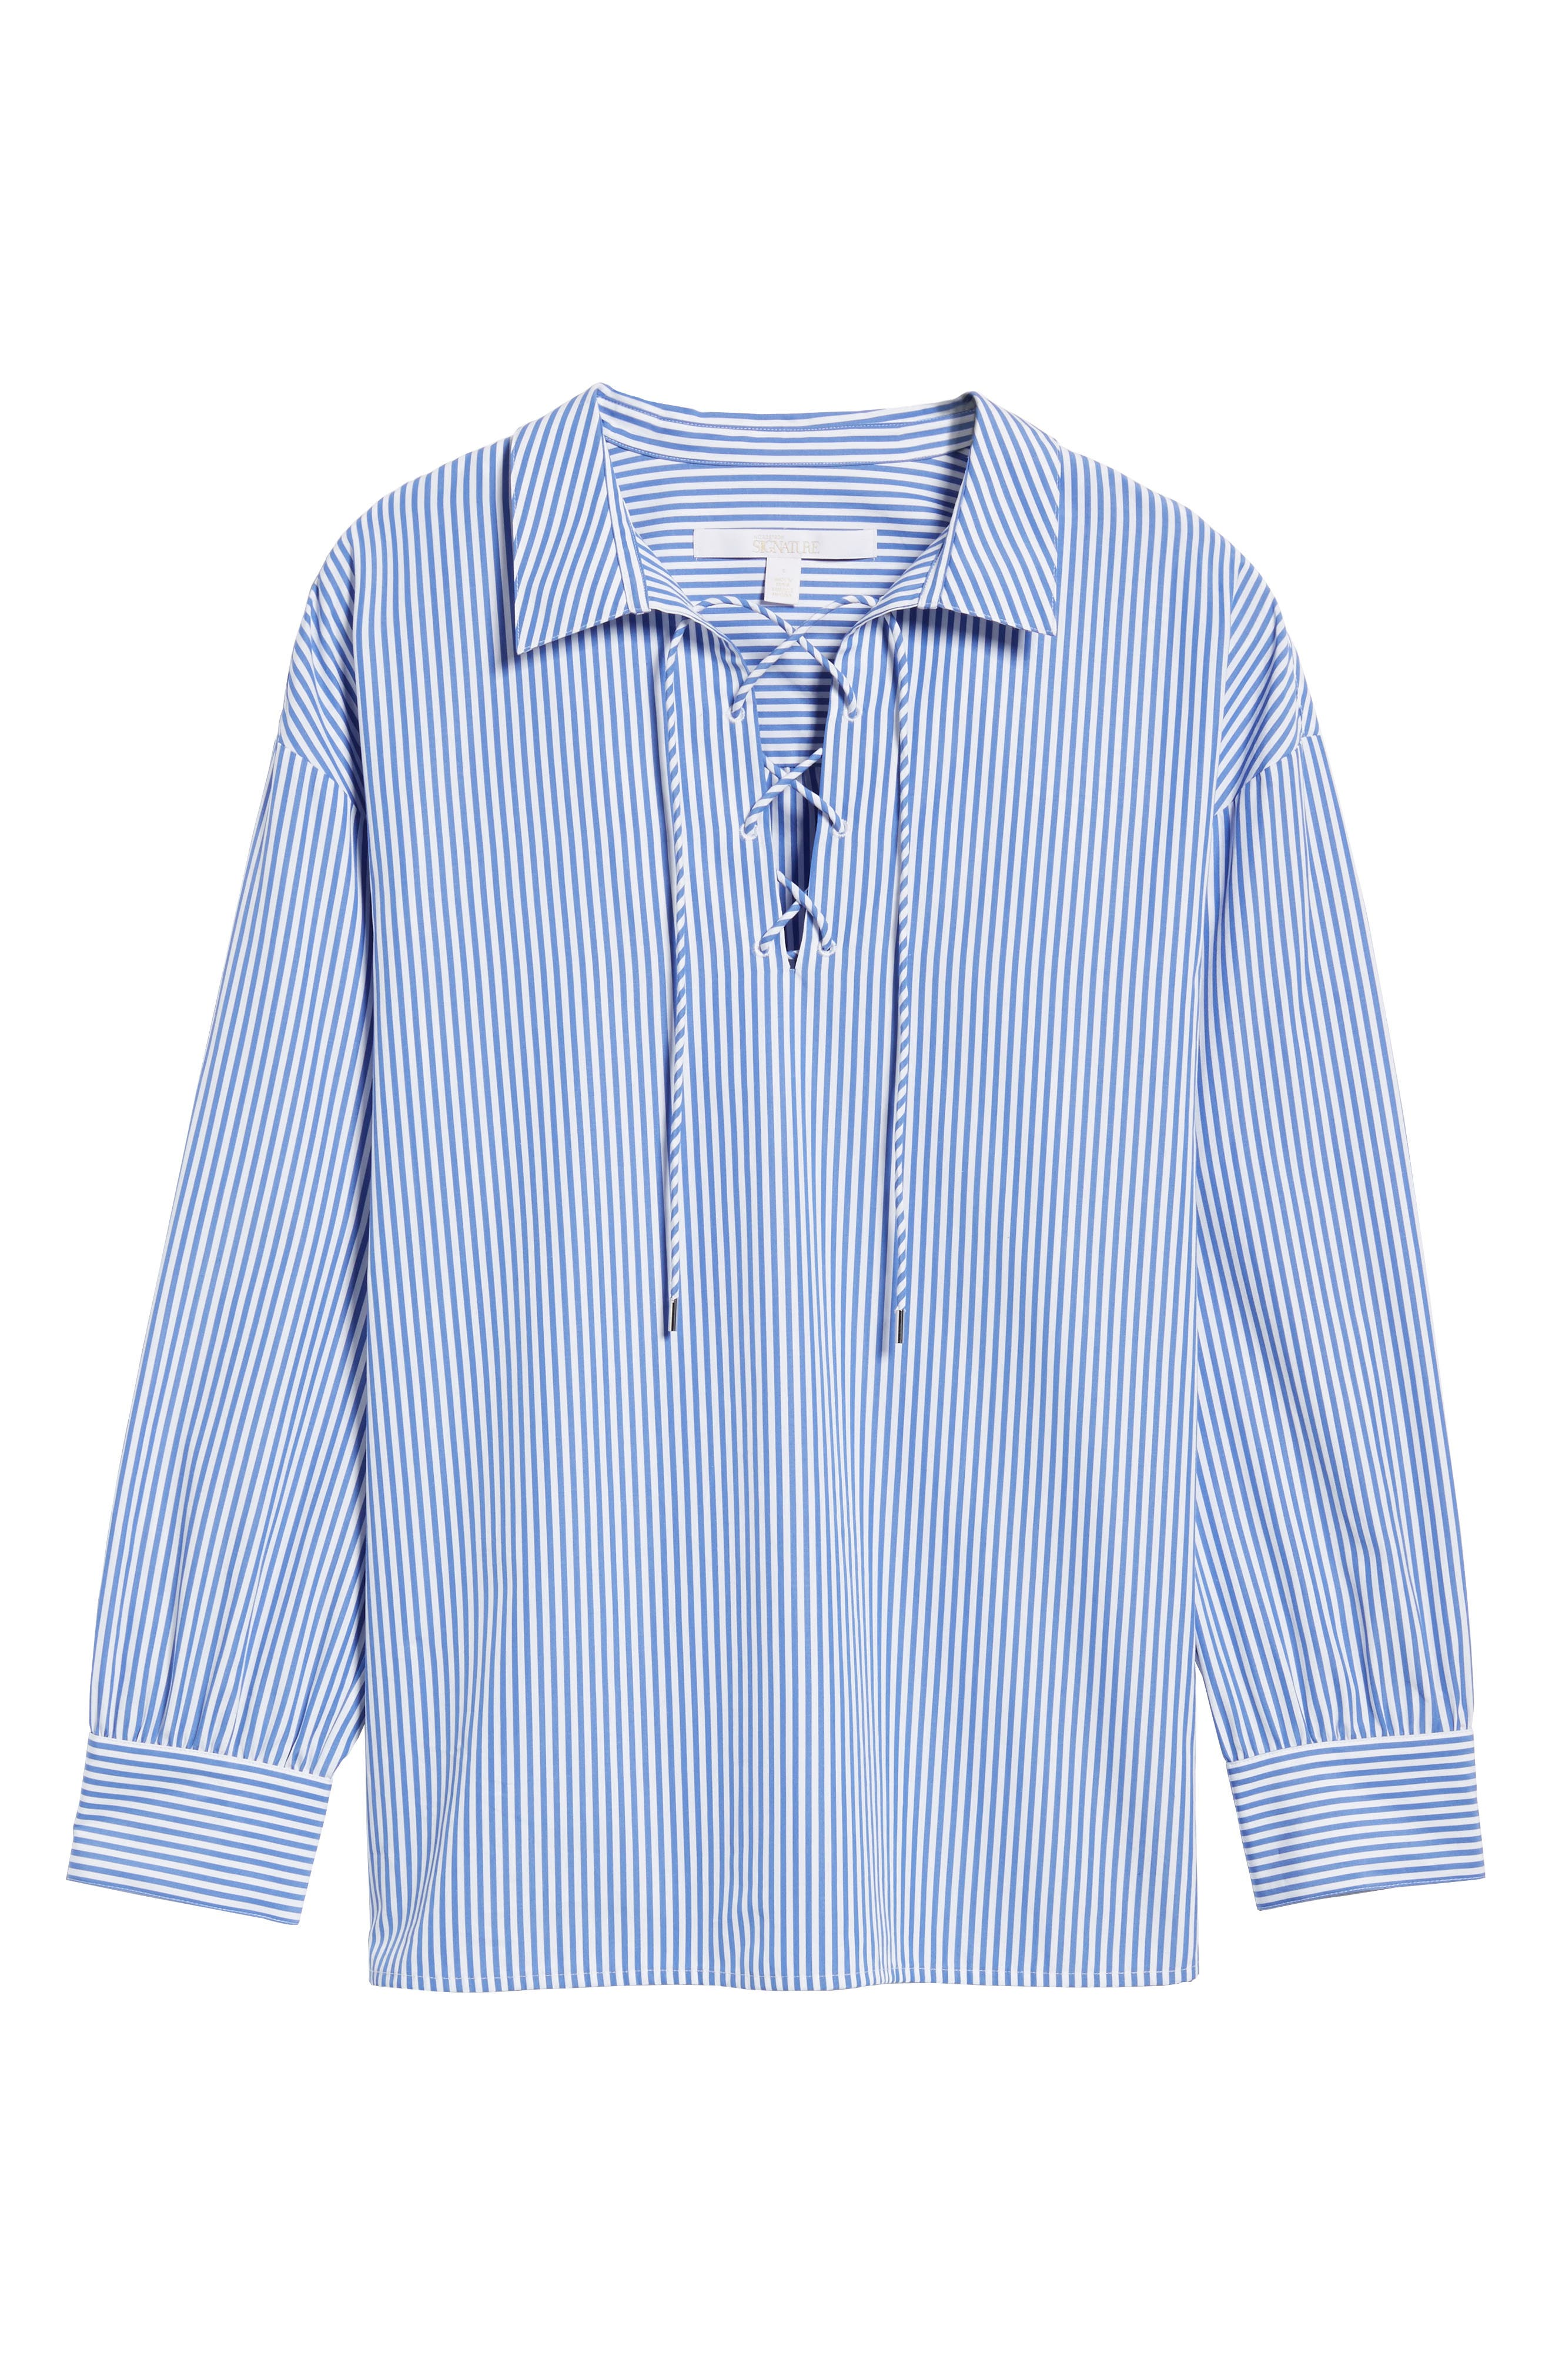 Lace-Up Stripe Shirt,                             Alternate thumbnail 7, color,                             Blue/ White Stripe